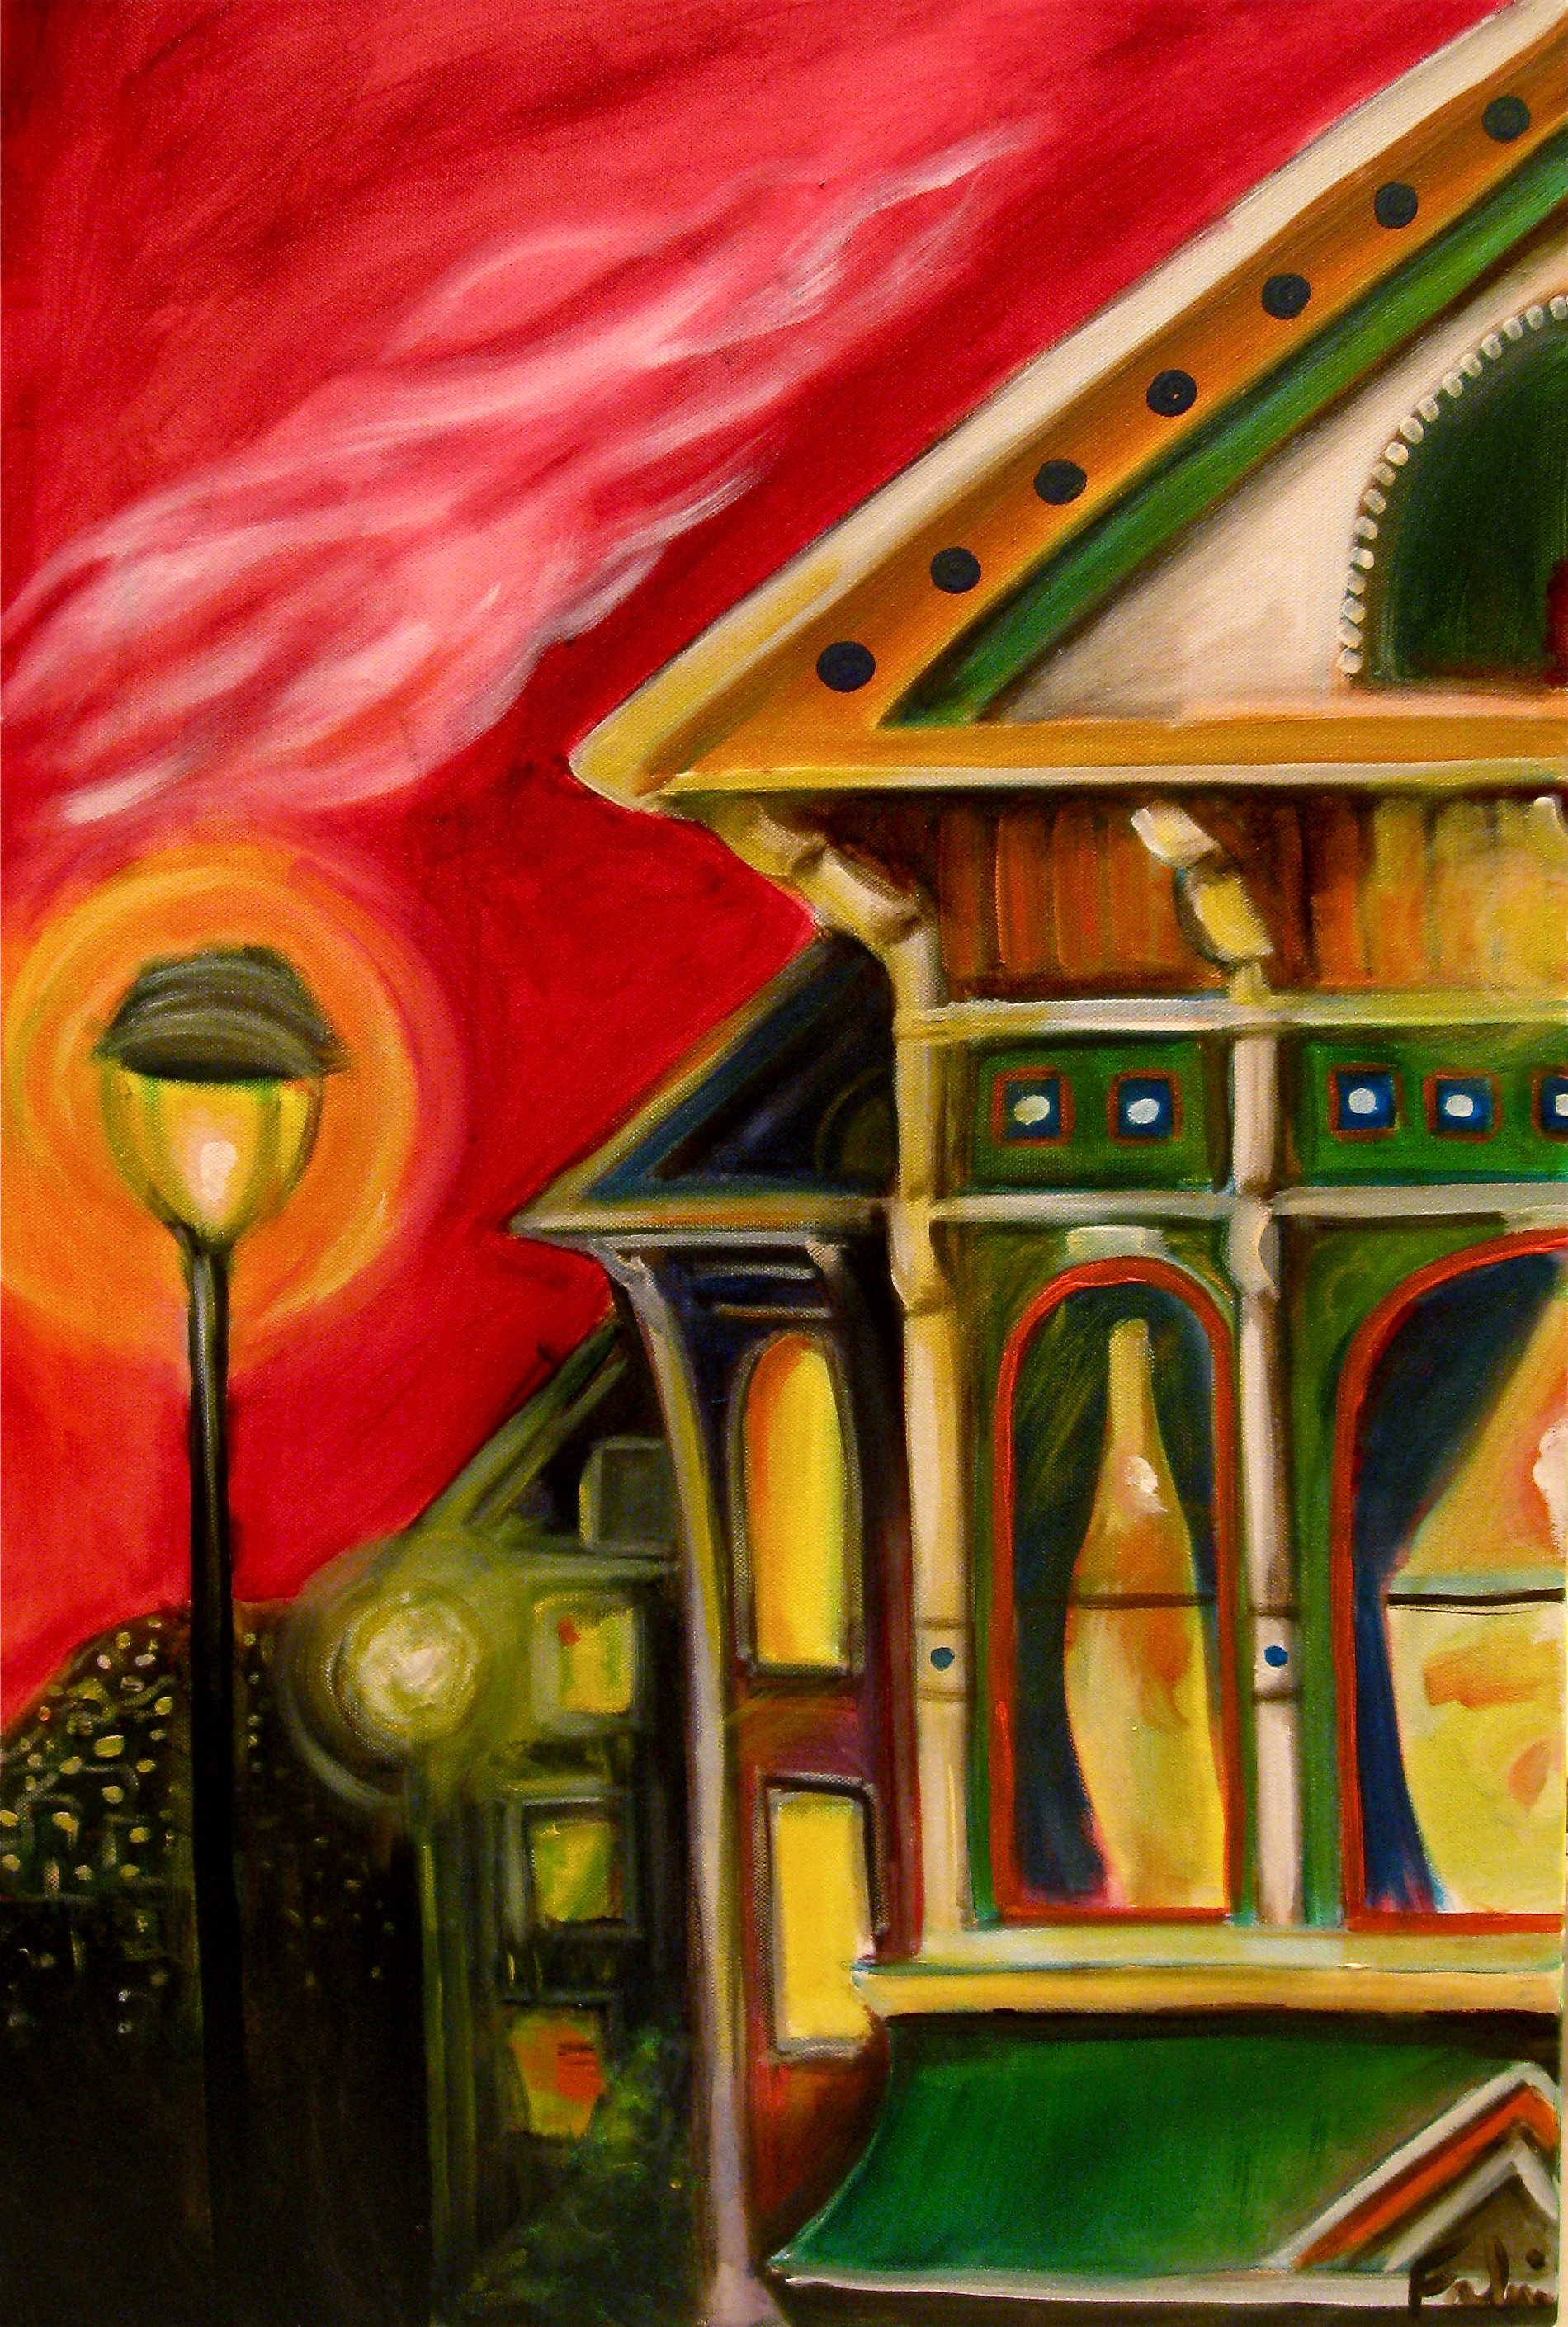 The Lights are Turning on SOLD acrylics, 24 x 36, SOLD